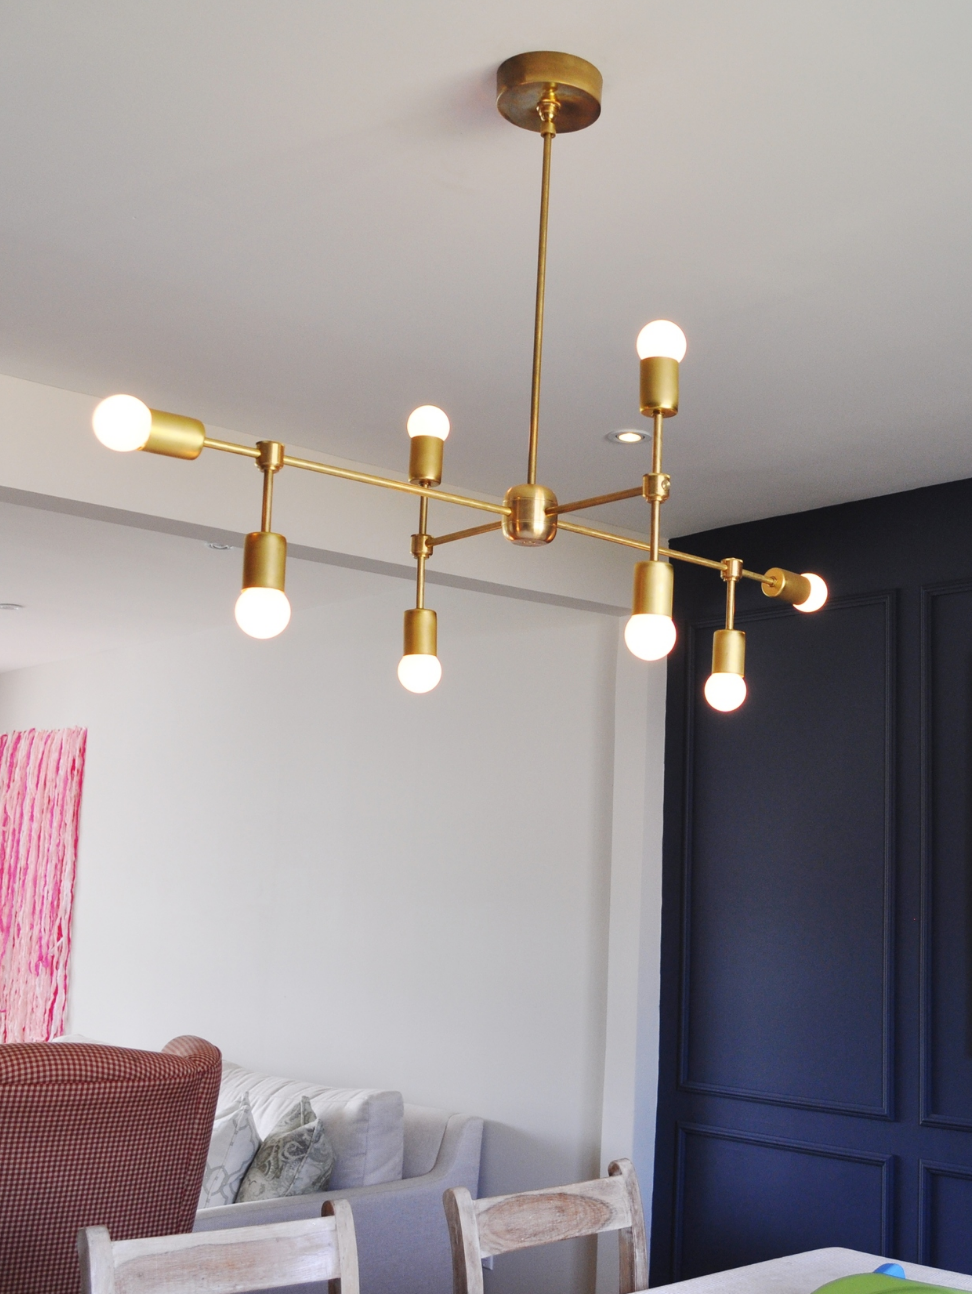 Thinking About Making Your Own Light Fixture You Ve Gotta Check Out These Diy Modern Fixtures Won T Believe Are Handmade